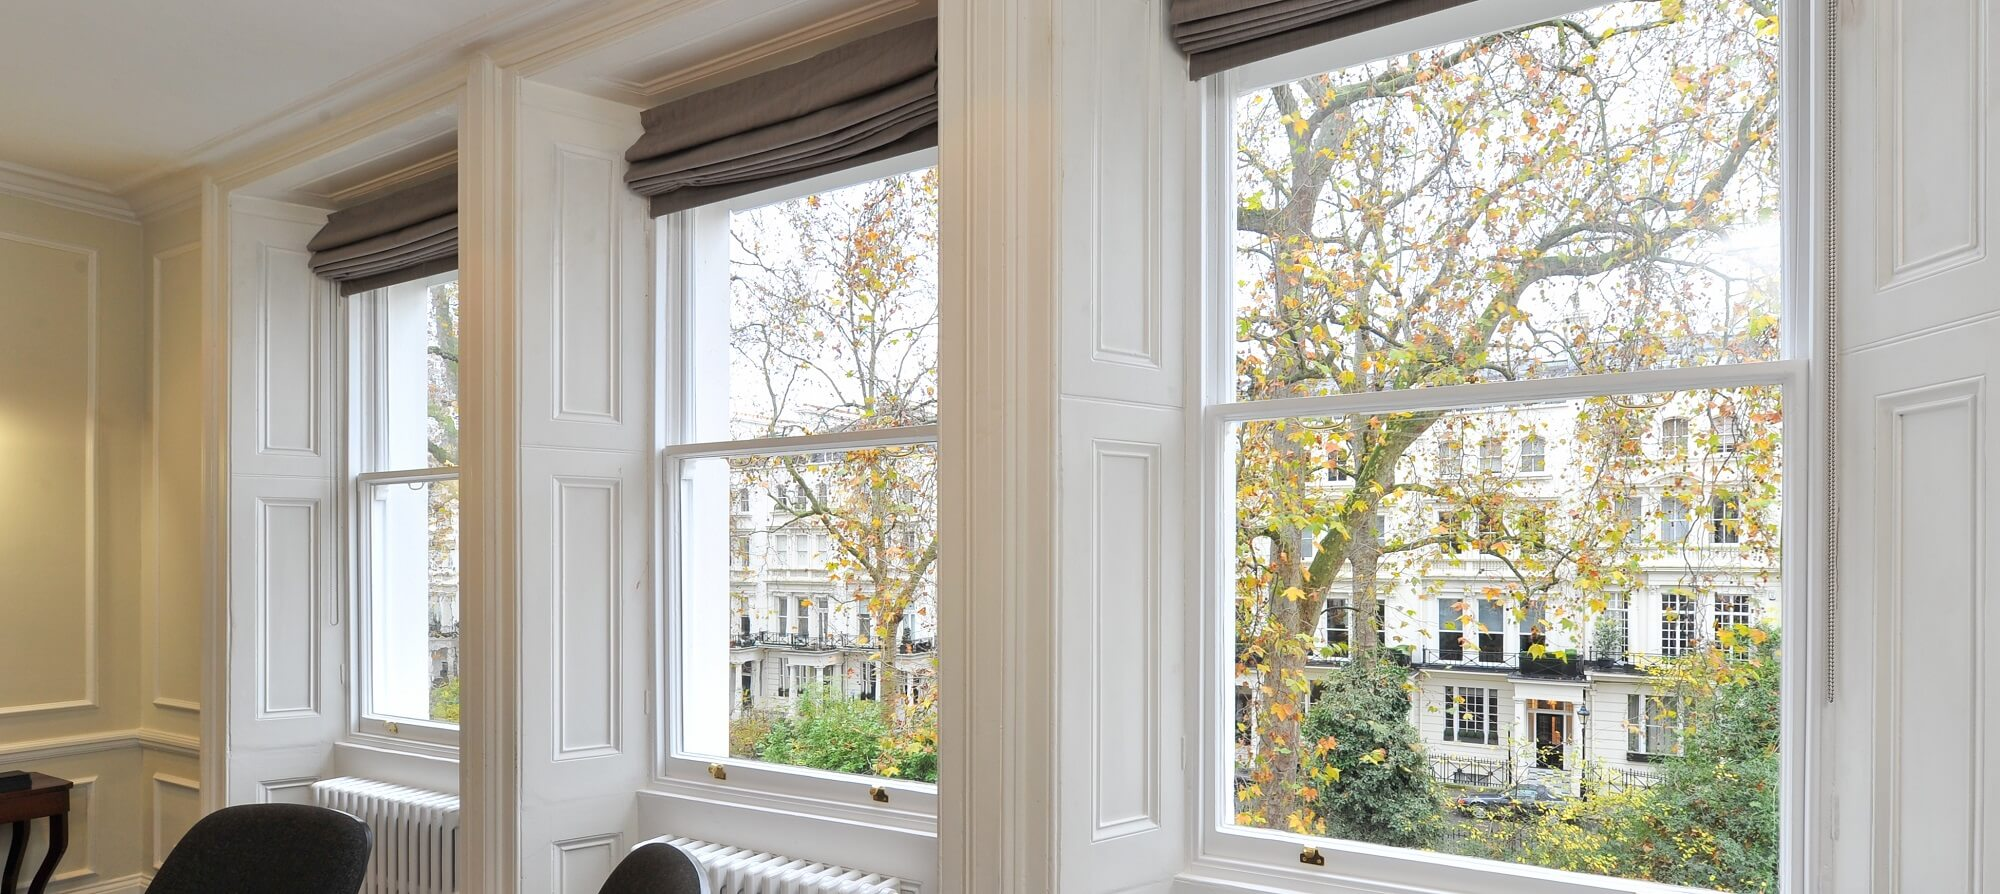 London sash window header